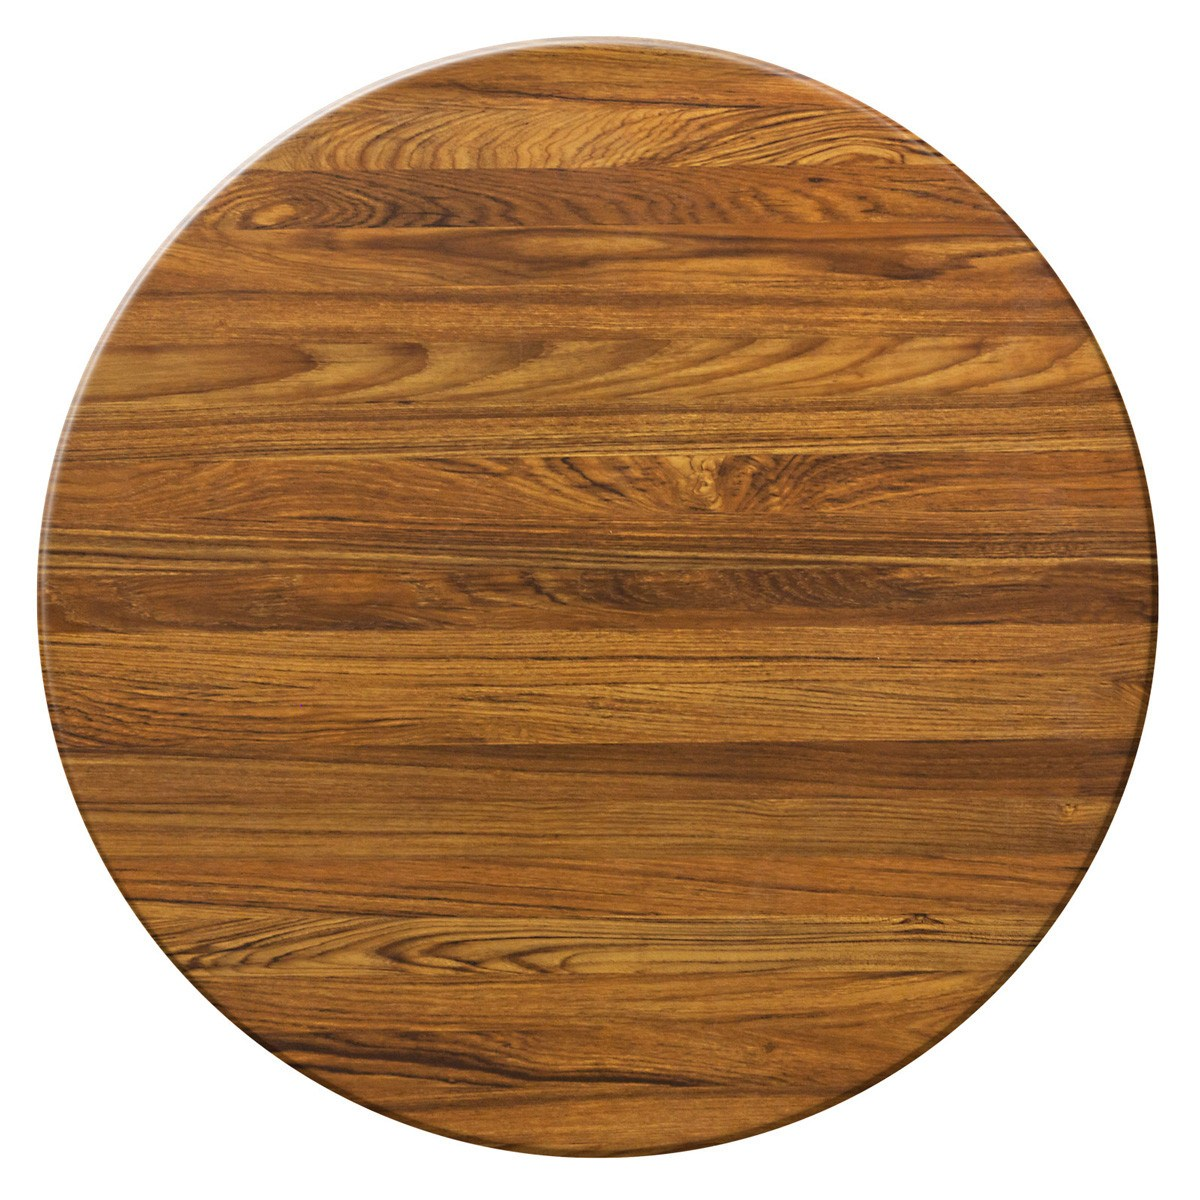 Duratop 24'' Round Table Top - Rattan Imports